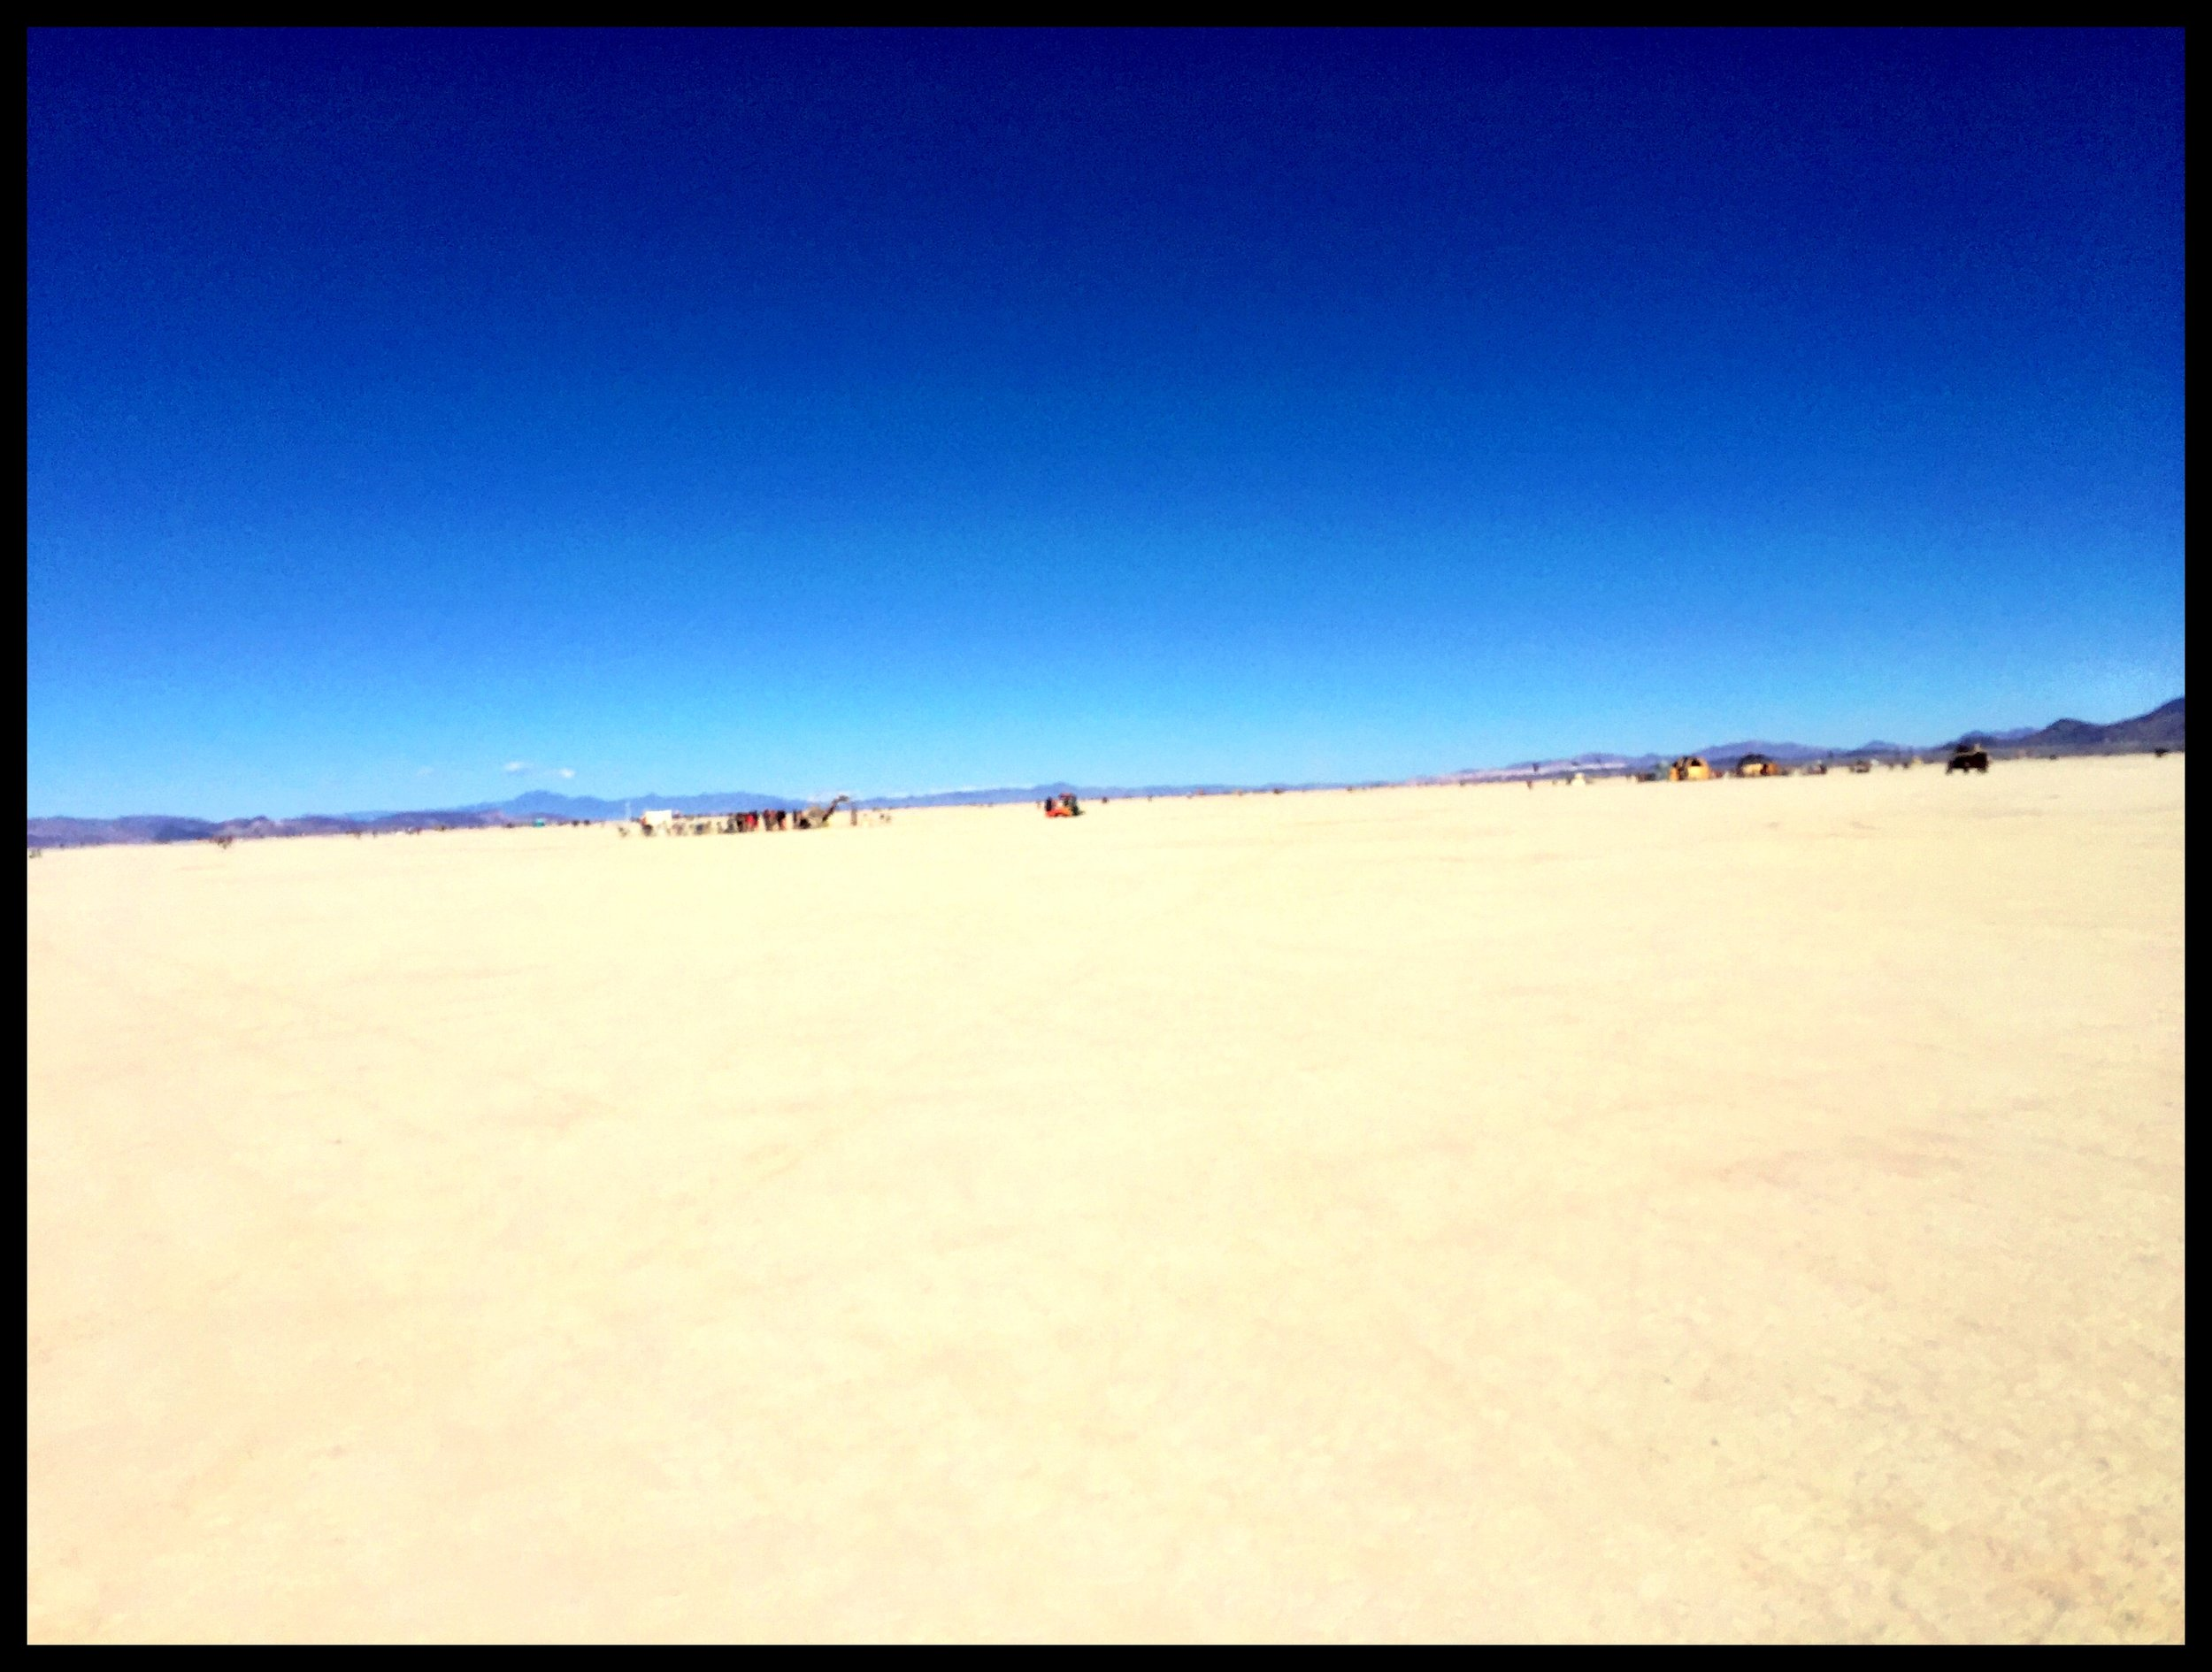 Playa, playa as far as the eye can see